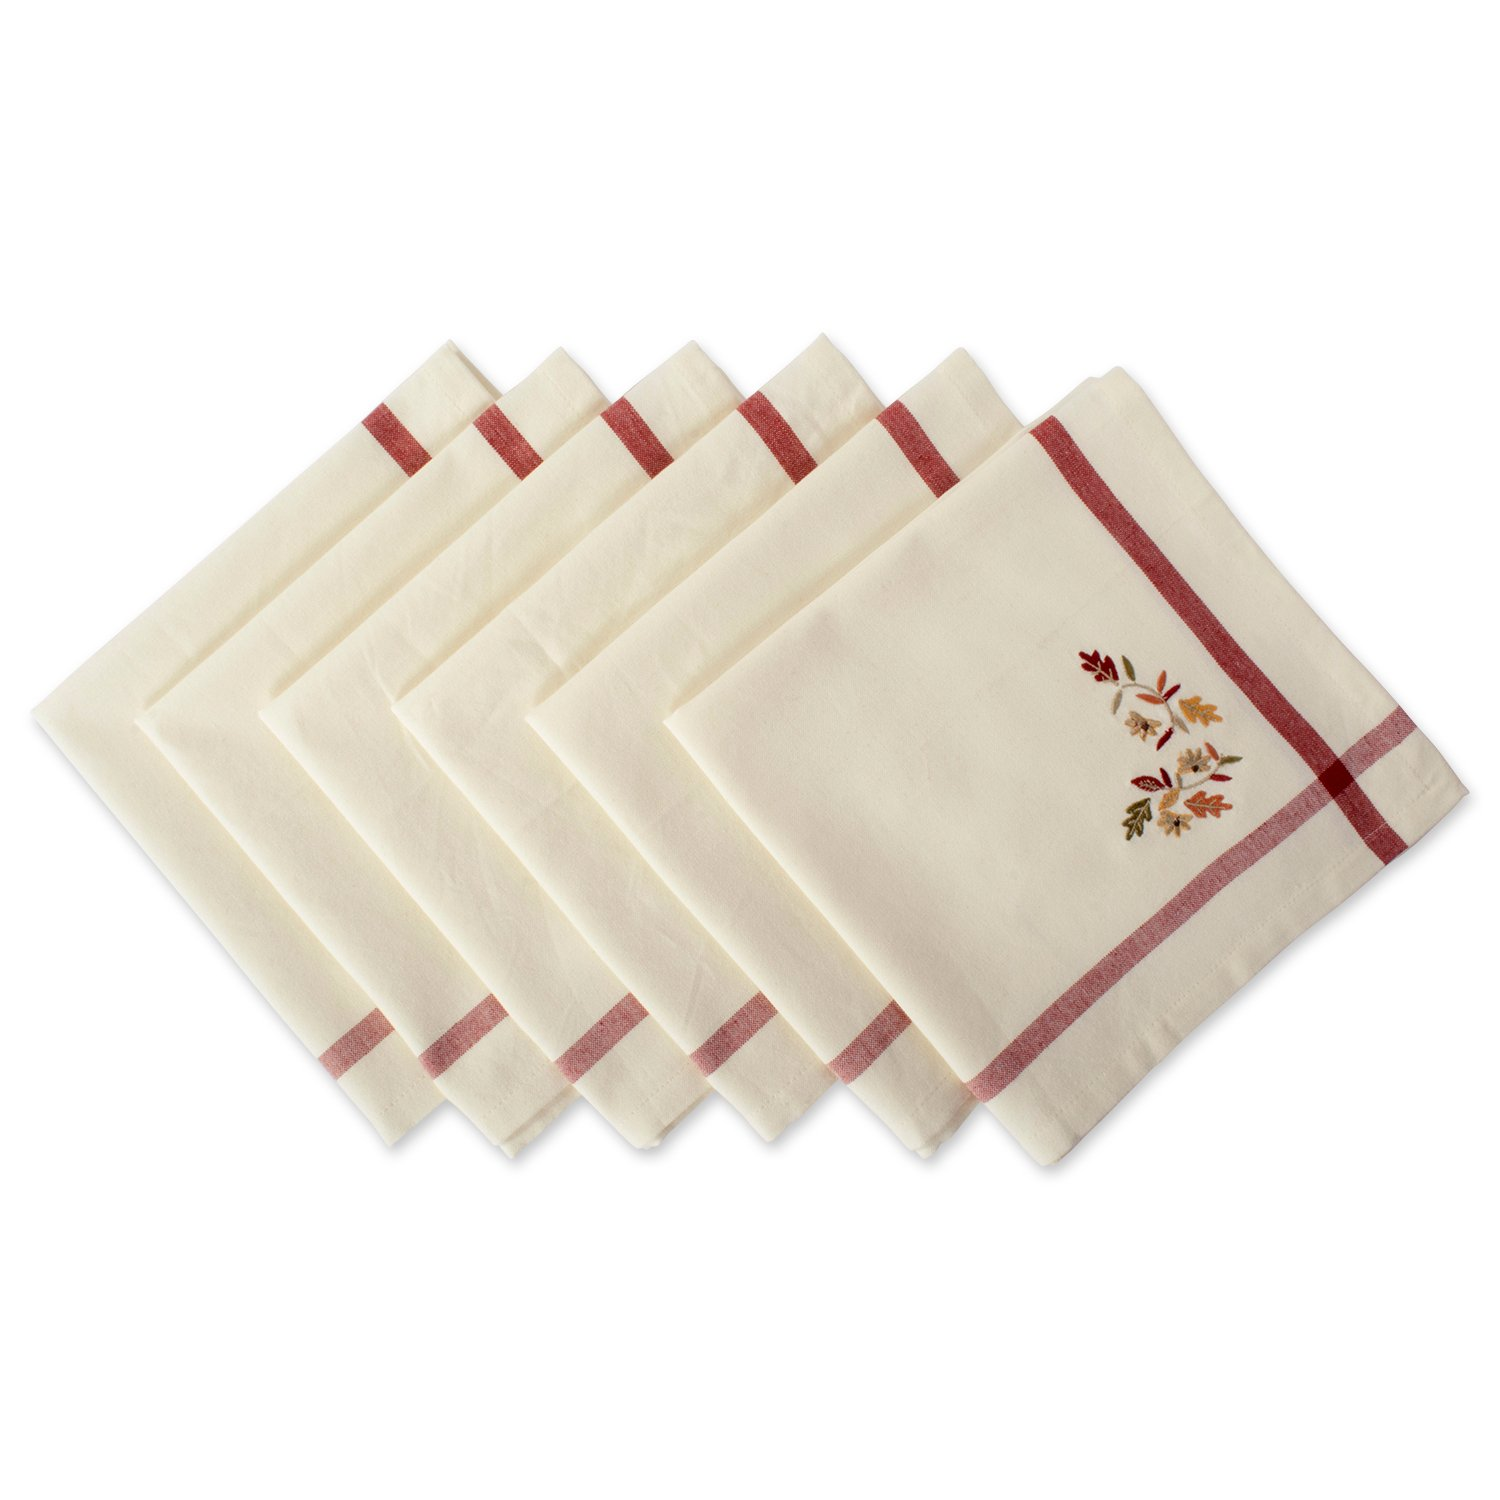 DII Oversized 20x20'' Cotton Napkin, Pack of 6, Cream with Embroidered Autumn Leaves - Perfect for Thanksgiving, Dinner Parties, Friendsgiving and Fall